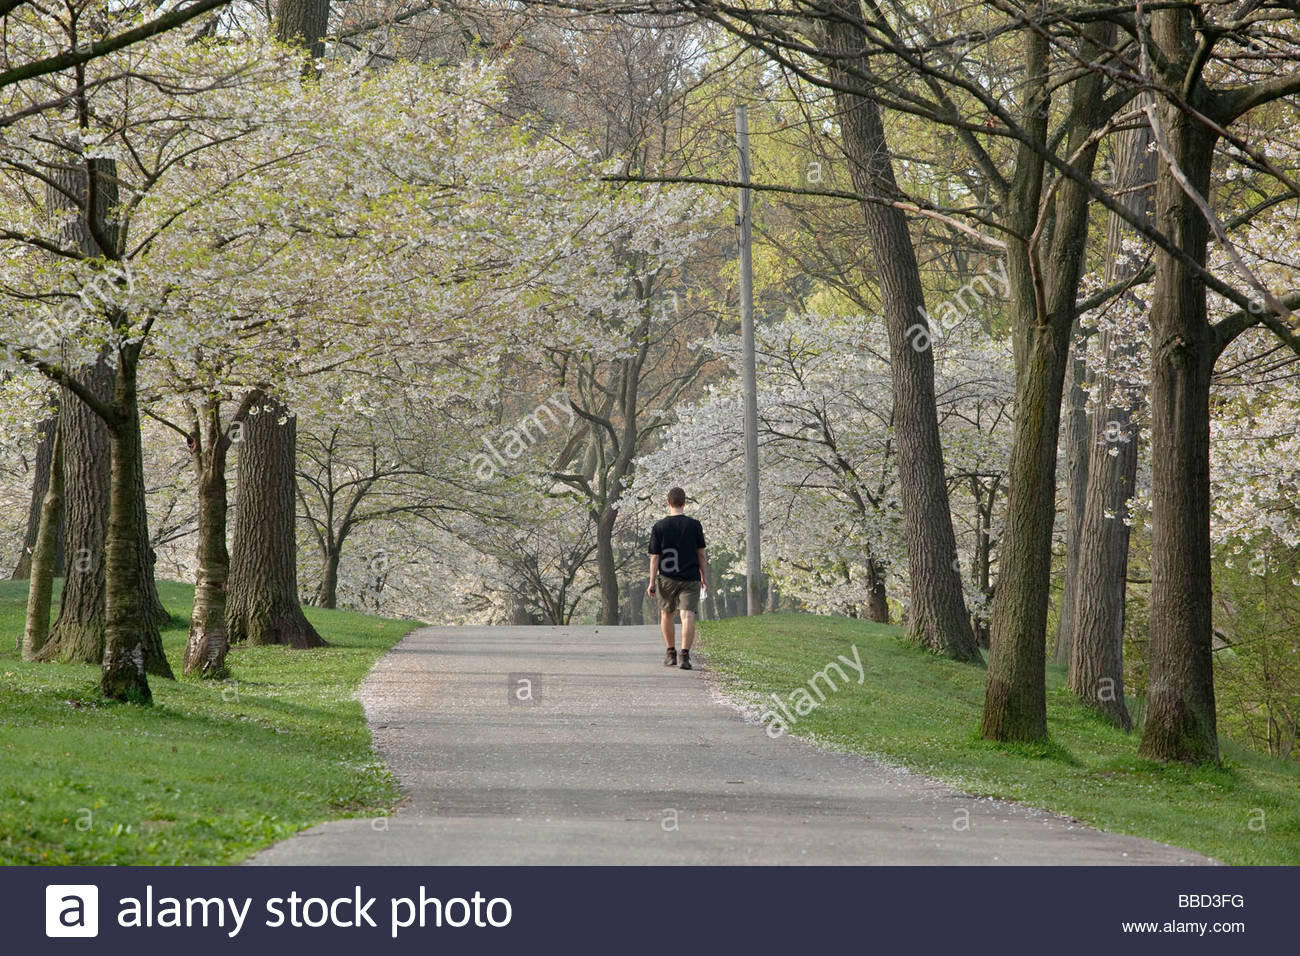 Walking through japanese cherry blossoms in springtime in High Park in Toronto Ontario Canada - Stock Image